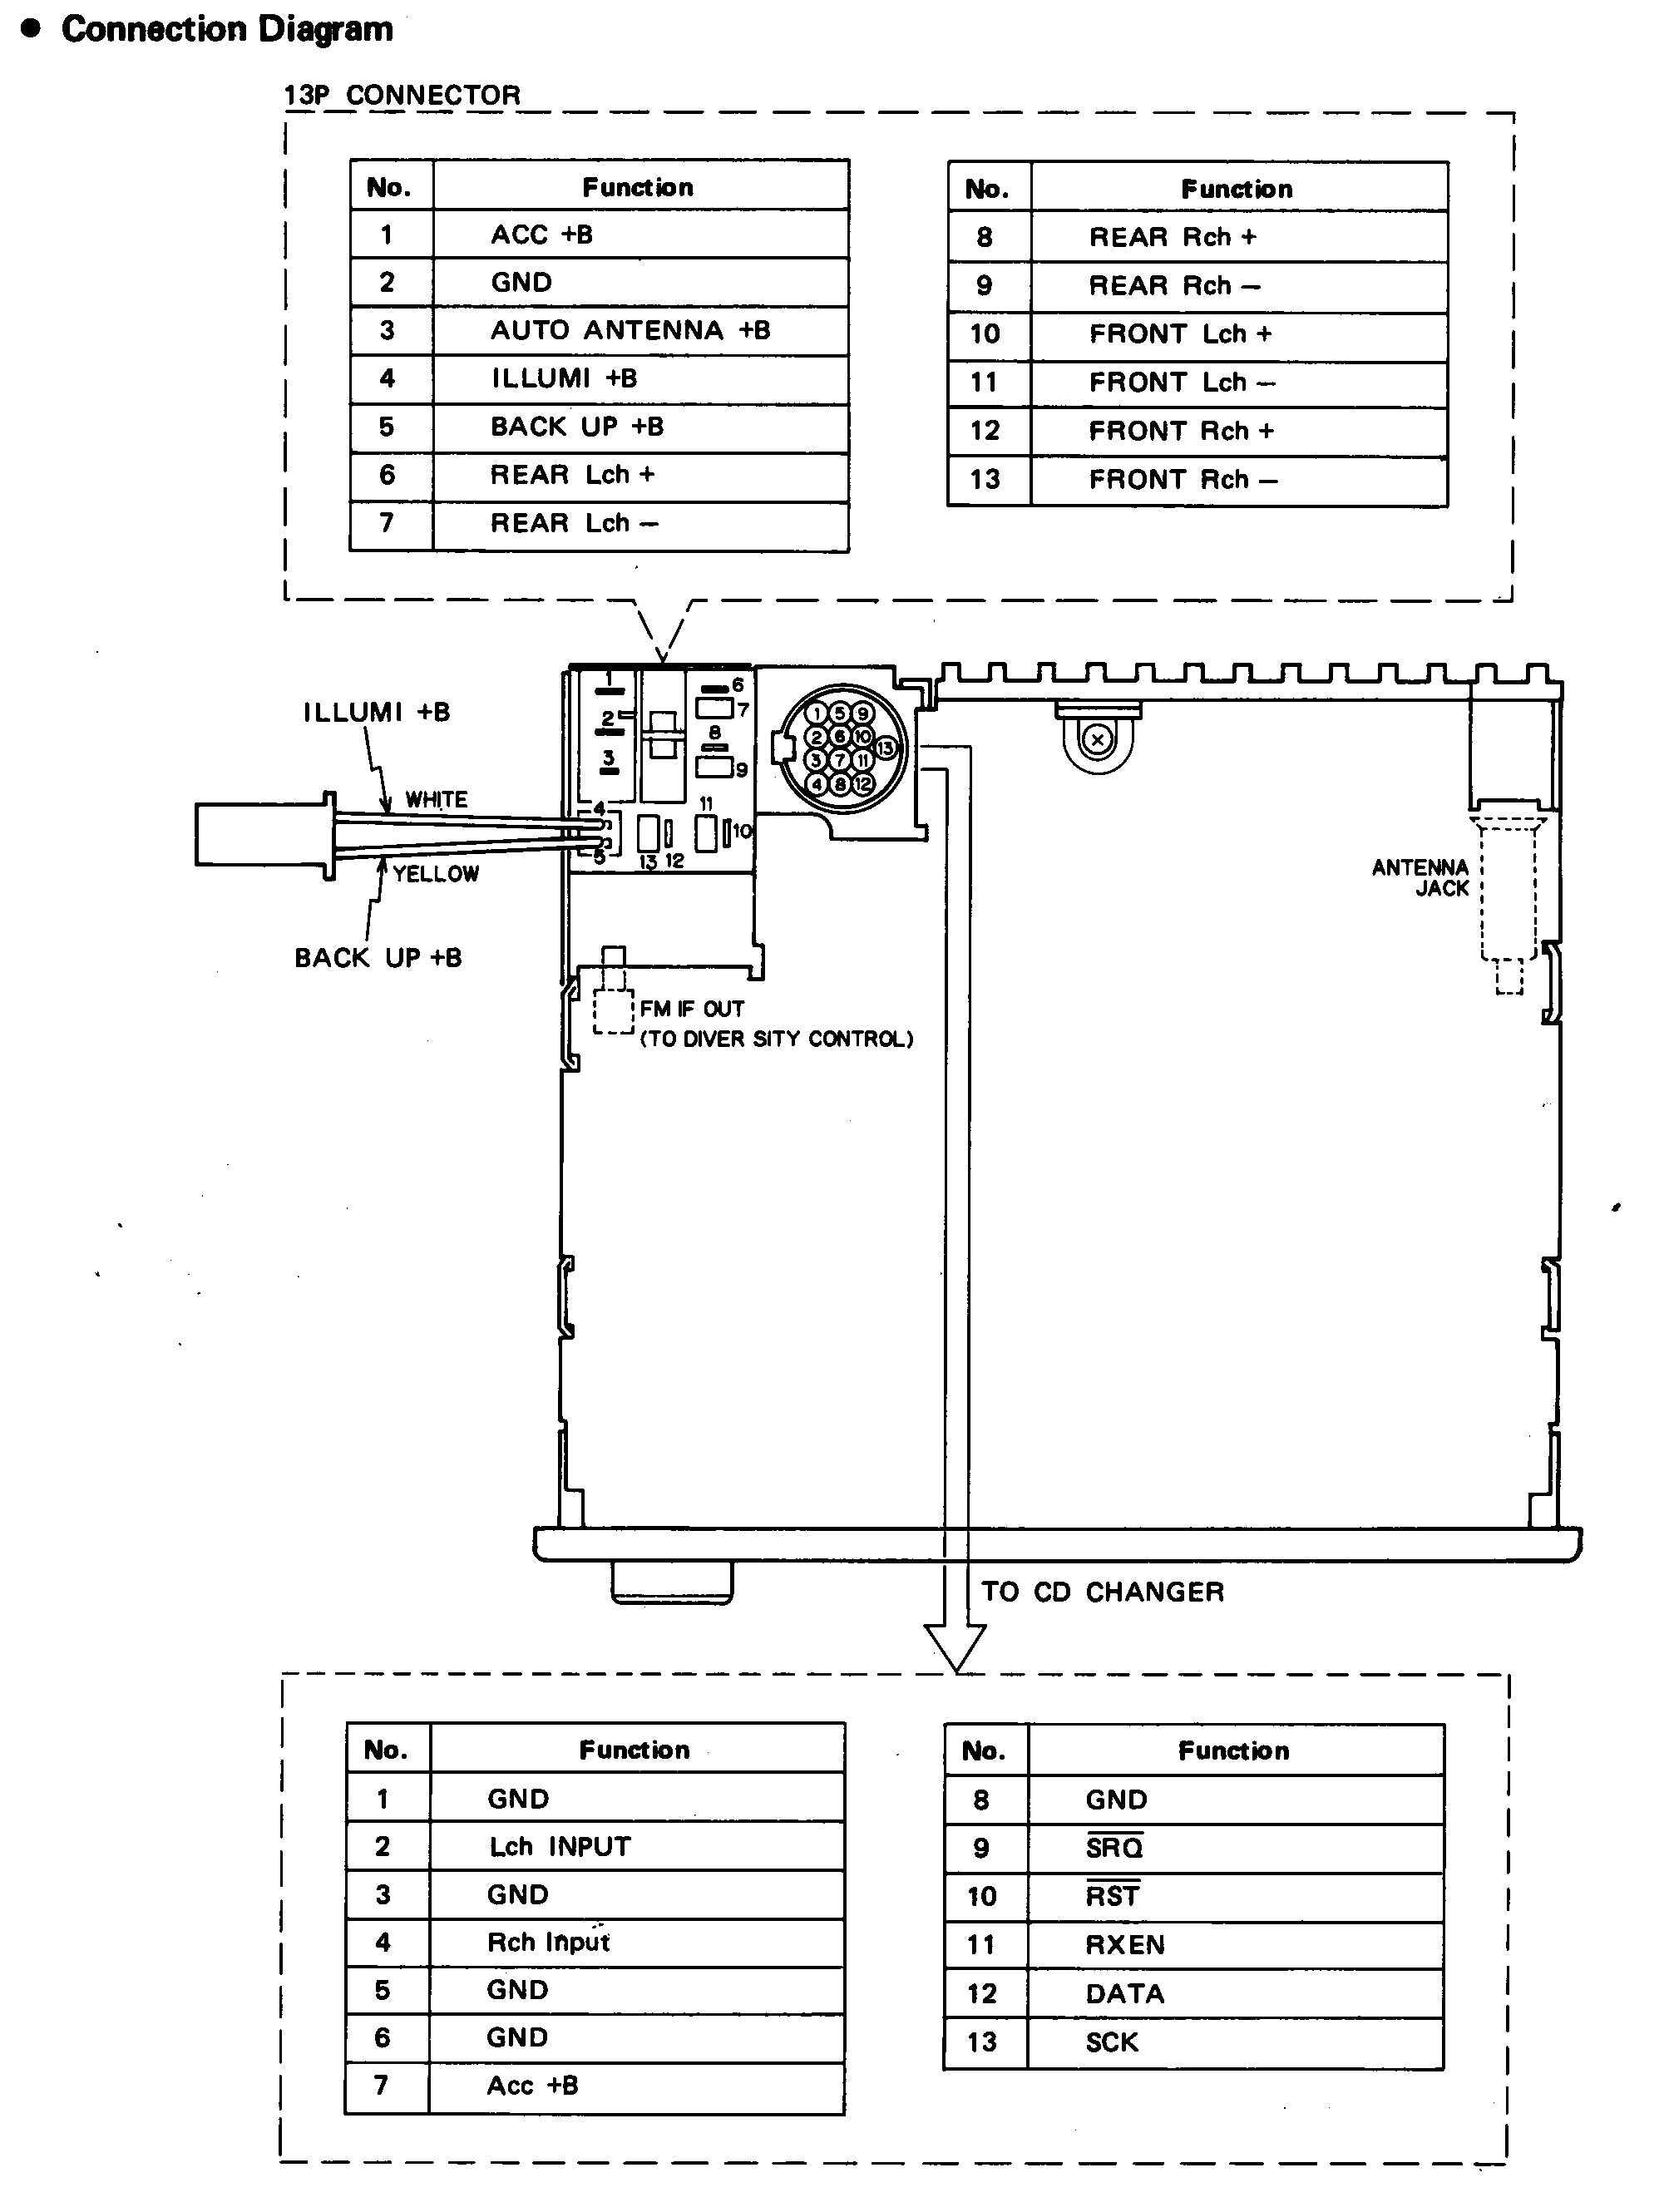 WireHarnessBMW121701 1996 jeep grand cherokee car stereo radio wiring diagram wiring 2002 jeep cherokee radio wiring diagram at crackthecode.co